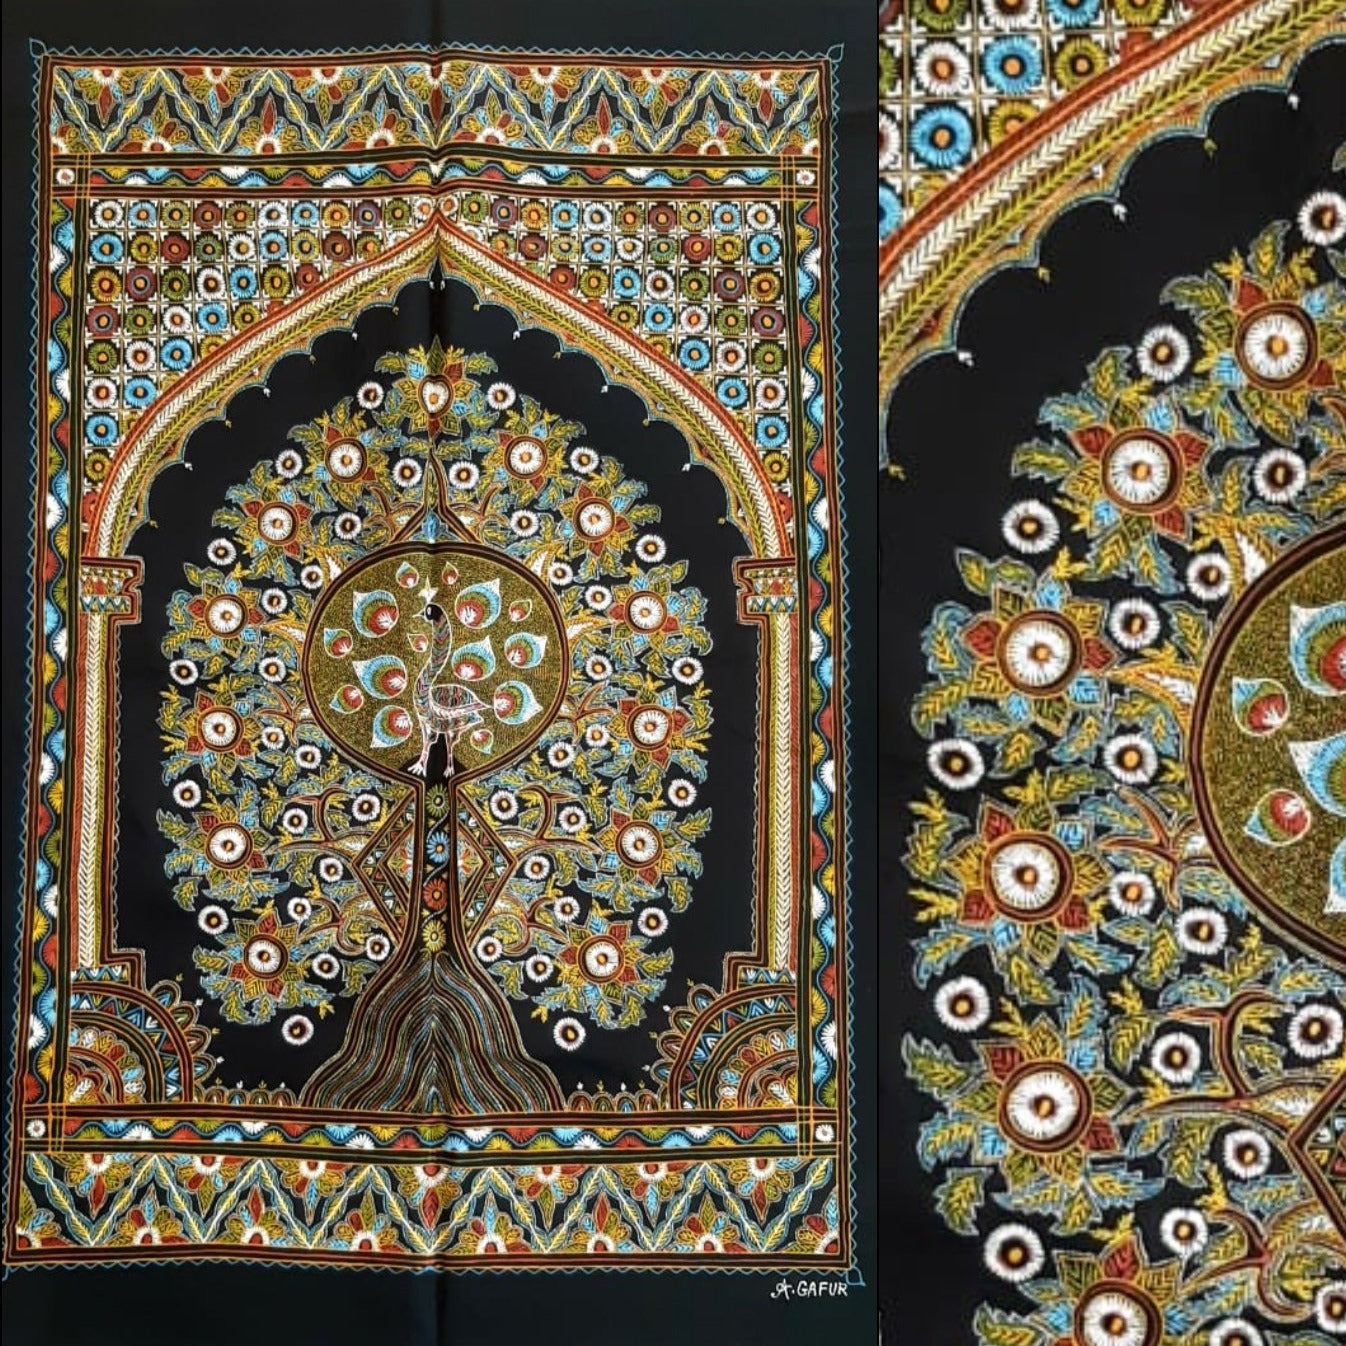 Tree with Peacock Traditional Rogan Art Painted Wall Hanging by Sumar Khatri